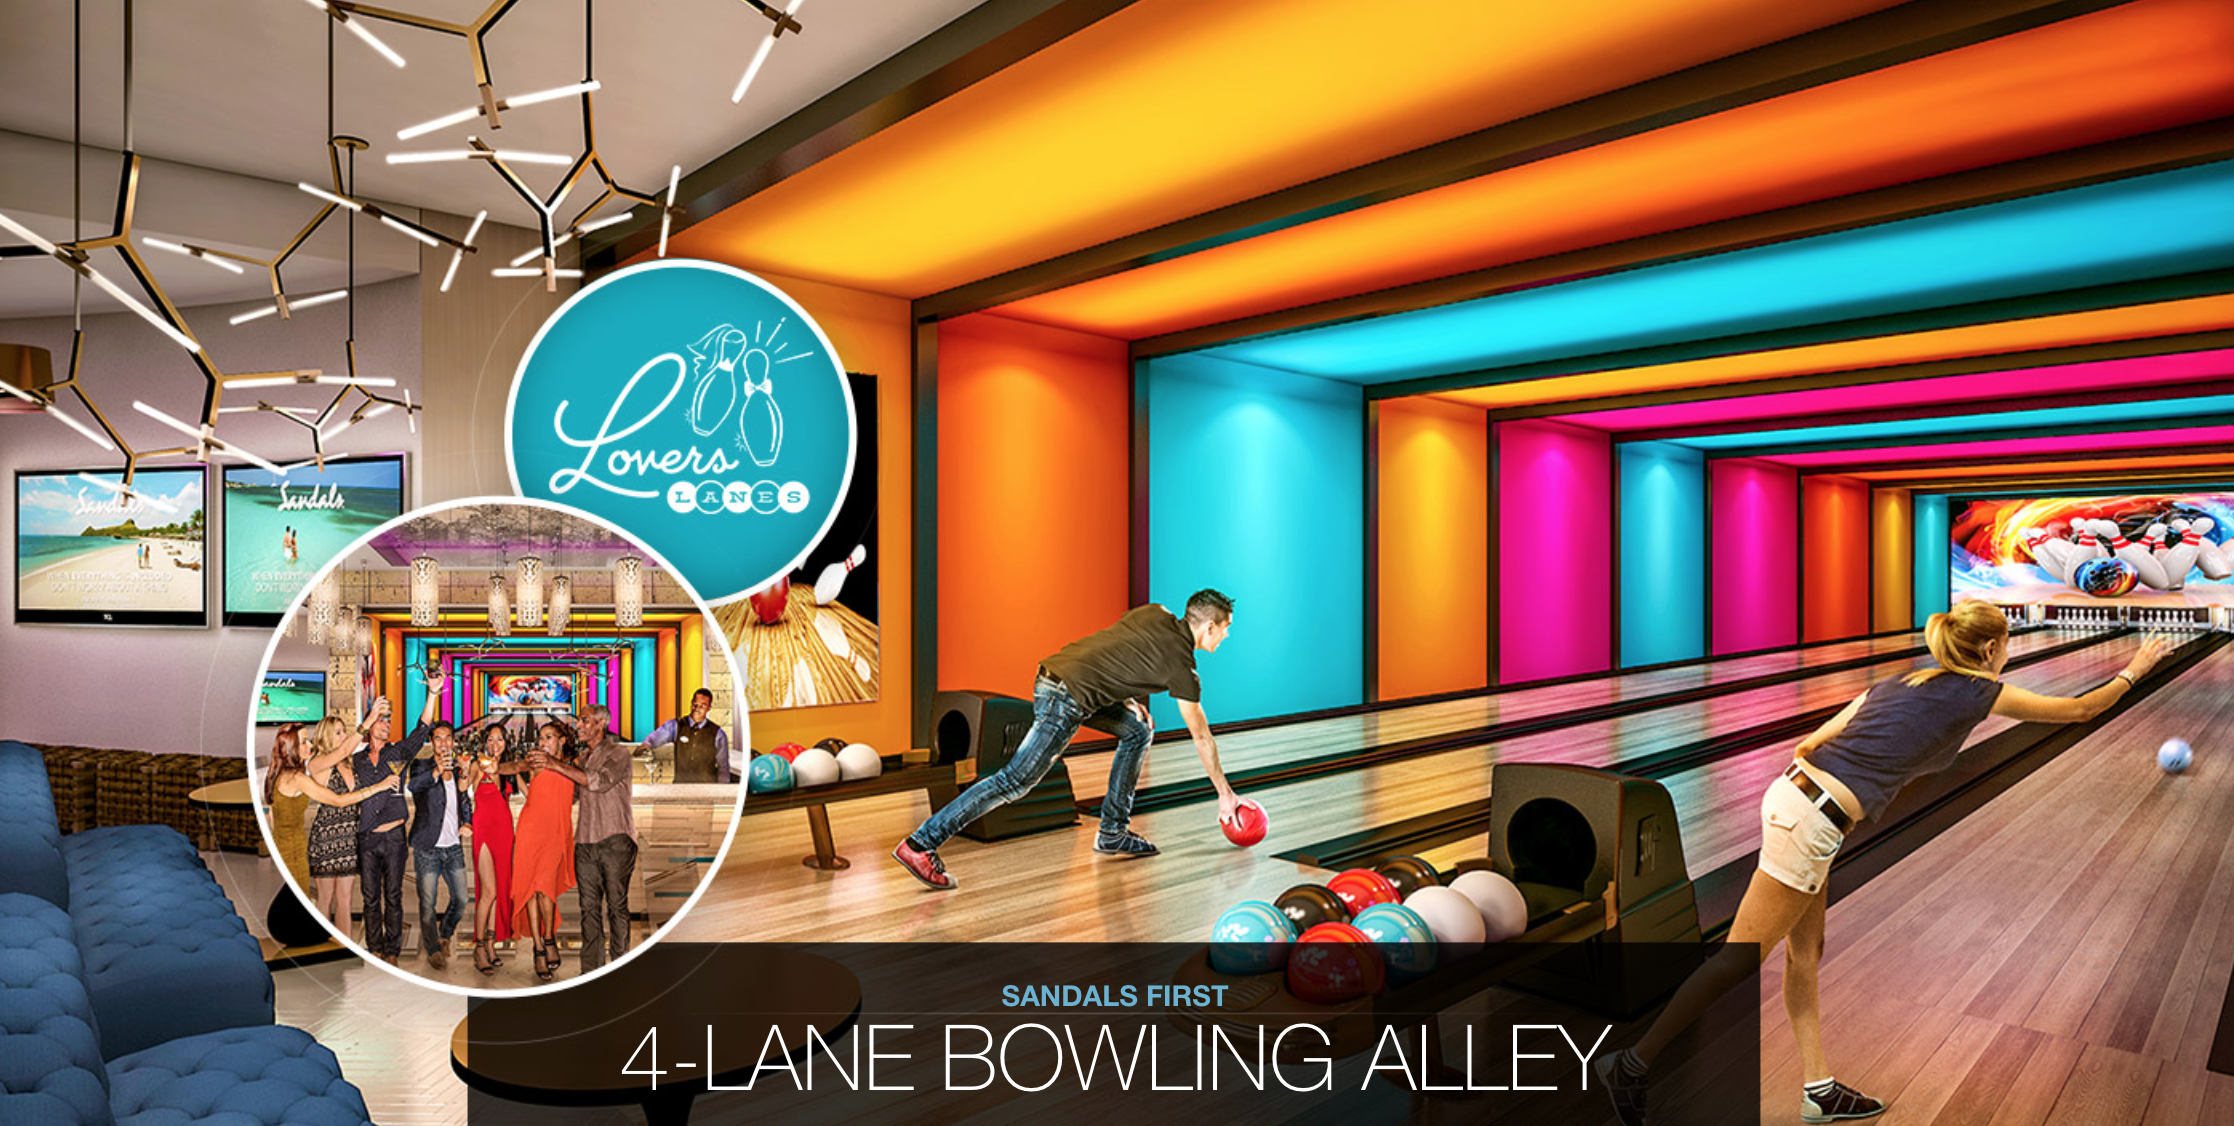 Sandals Royal Barbados Bowling Alley Lovers Lane 187 Best